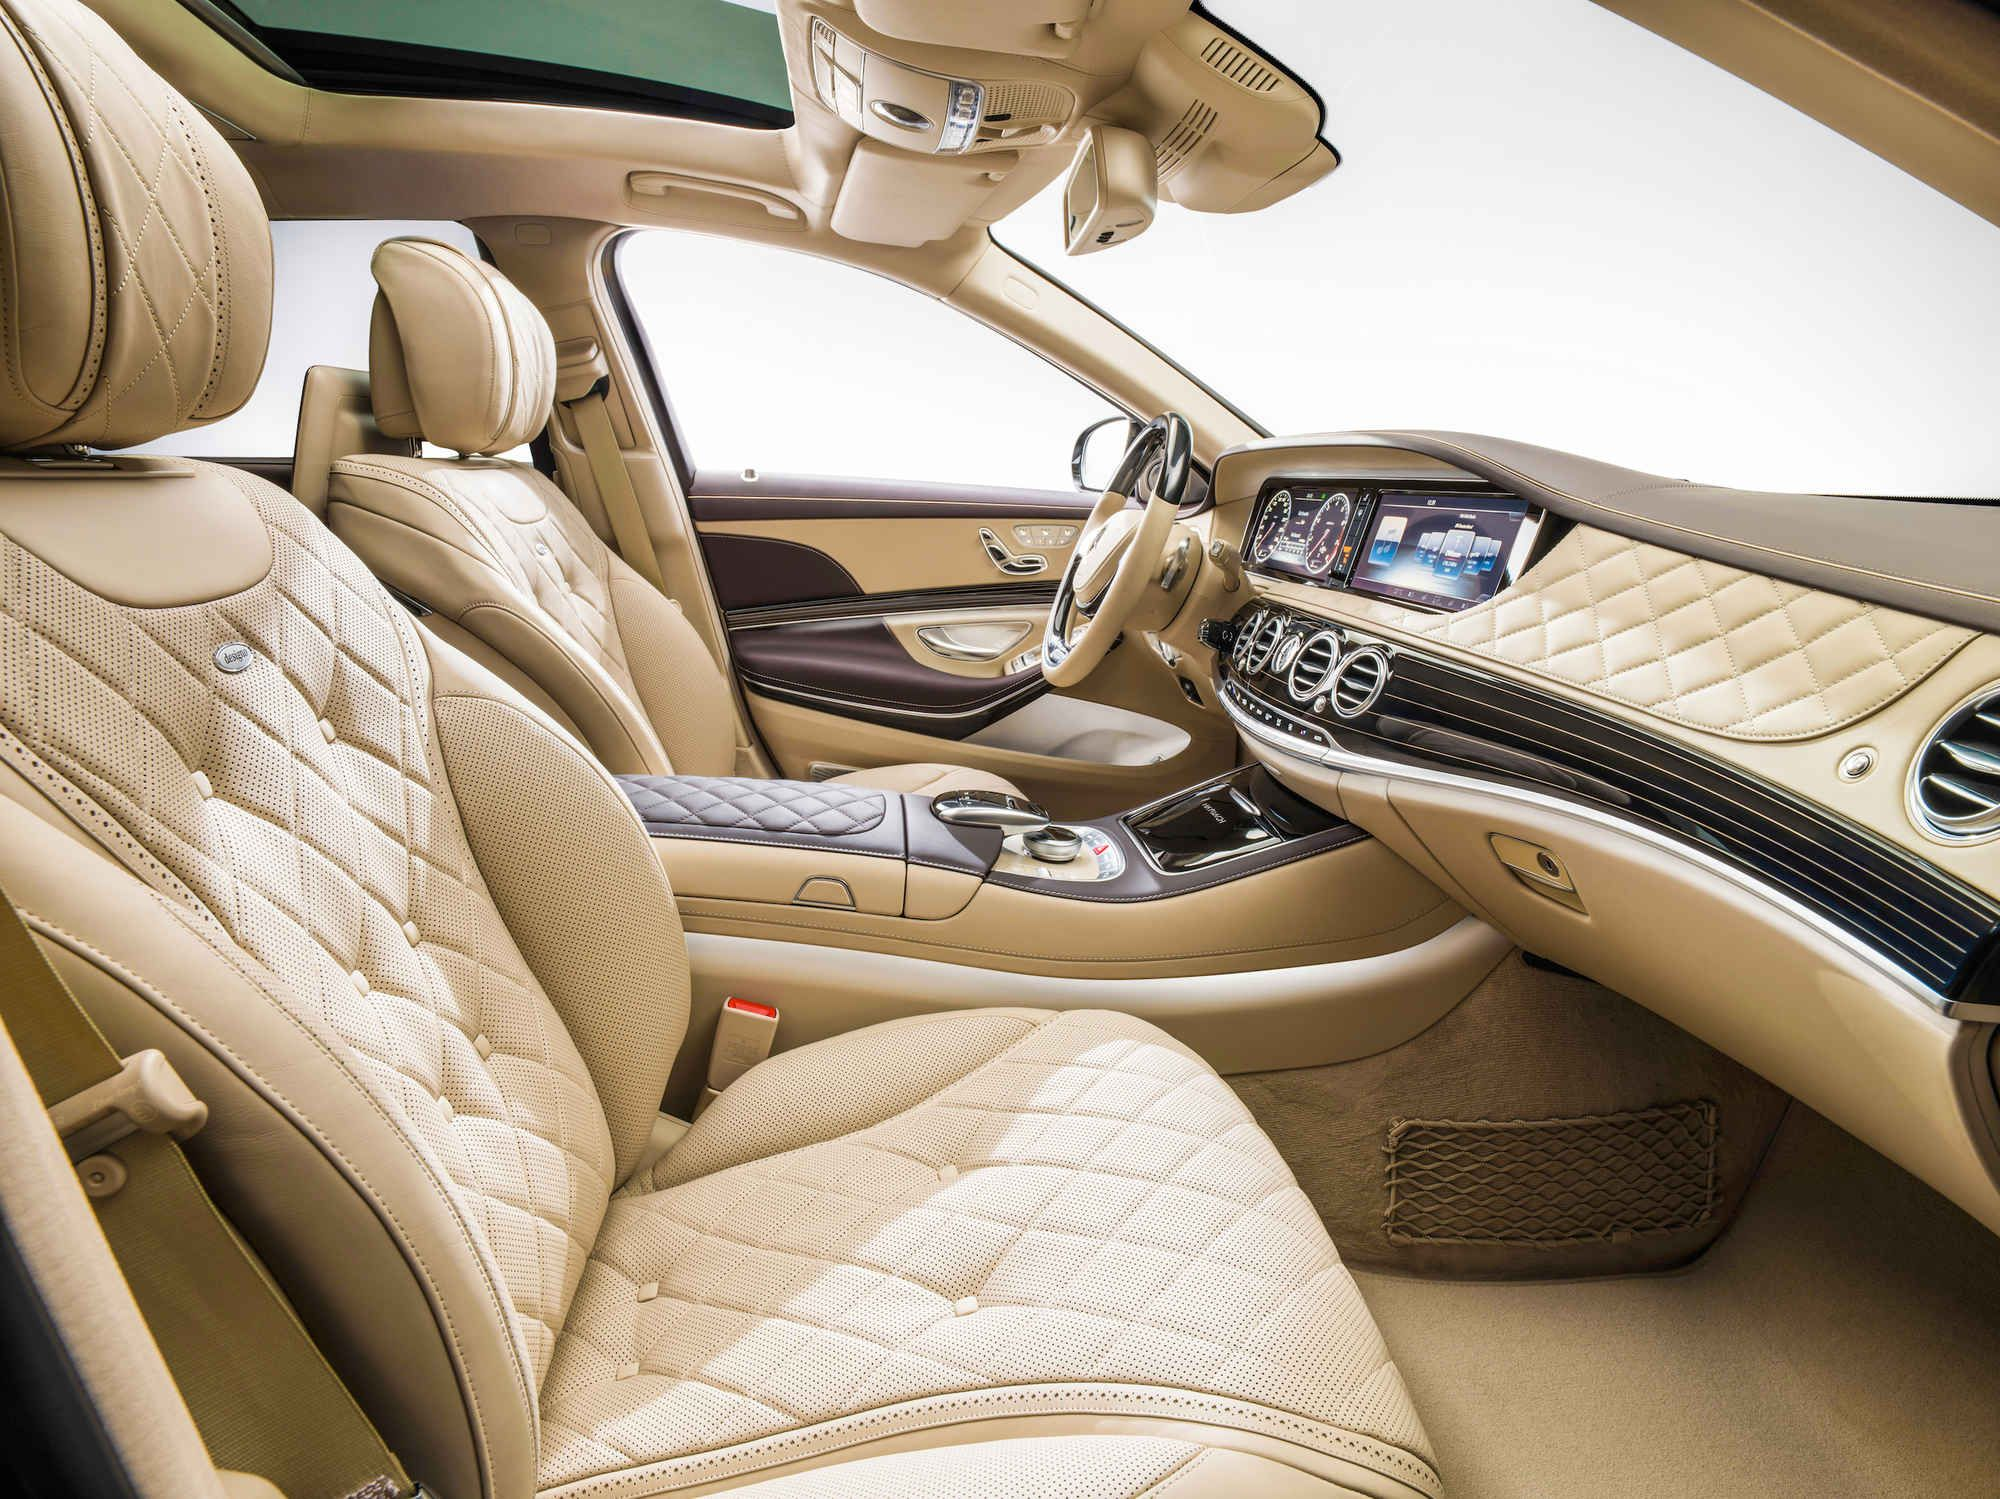 New Cars 2017 Maybach Mercedes S600 Might Be The Most Luxurious Car In World Supercompressor